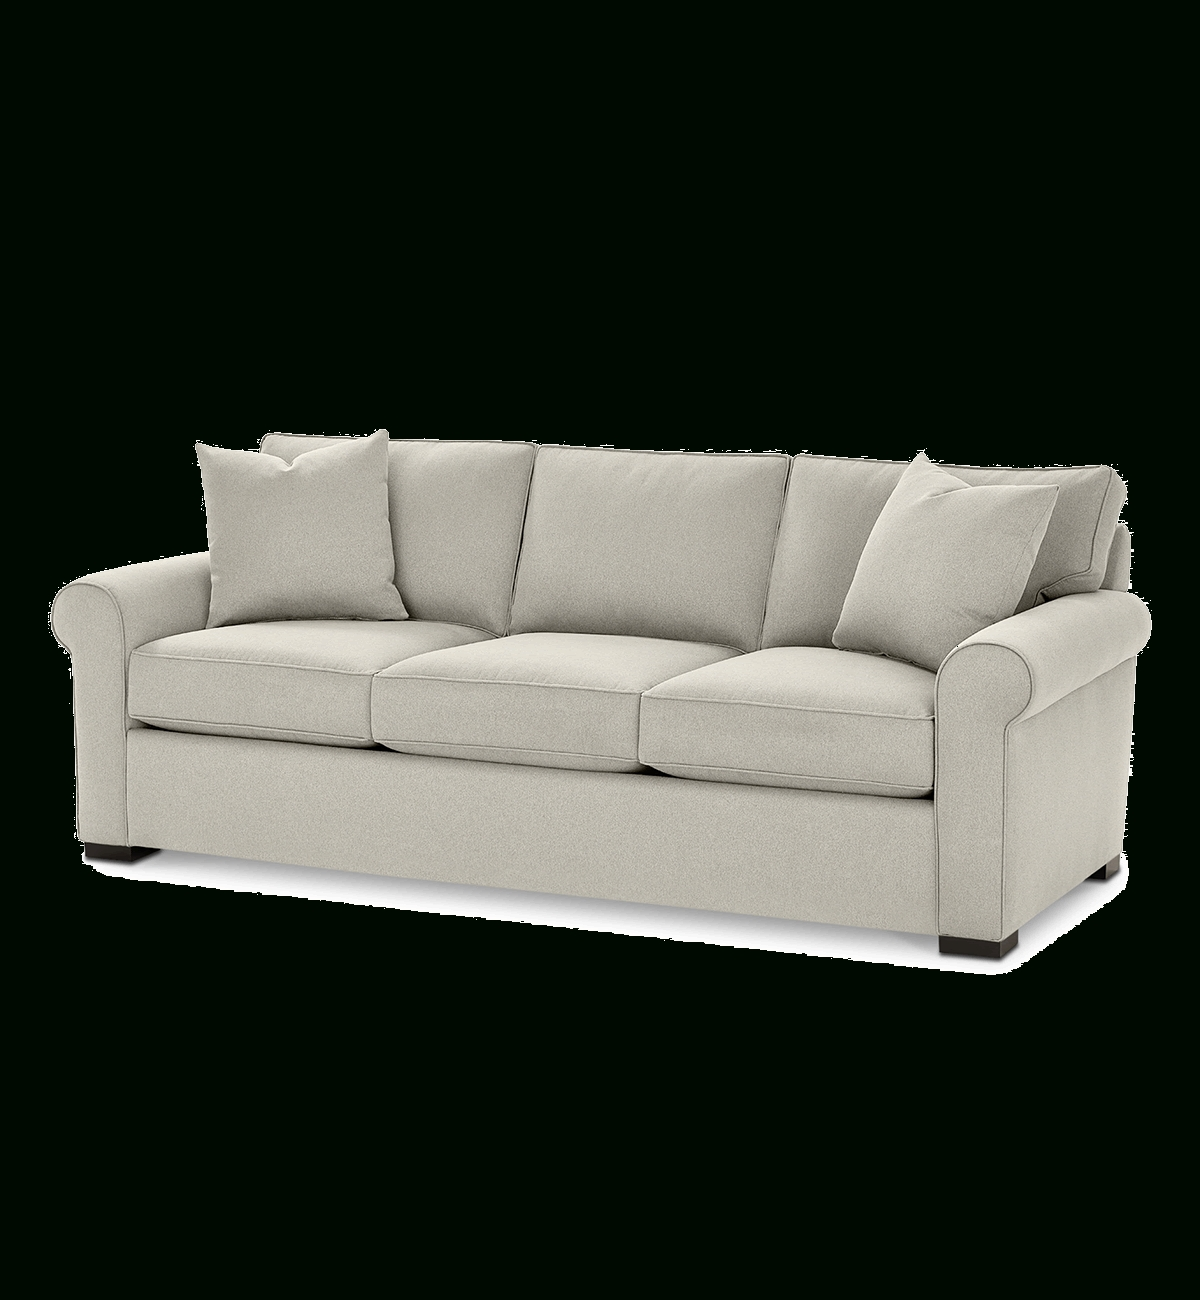 Most Recently Released Macys Sectional Sofas Within Sectional Sofas Couches And Sofas – Macy's (View 14 of 20)